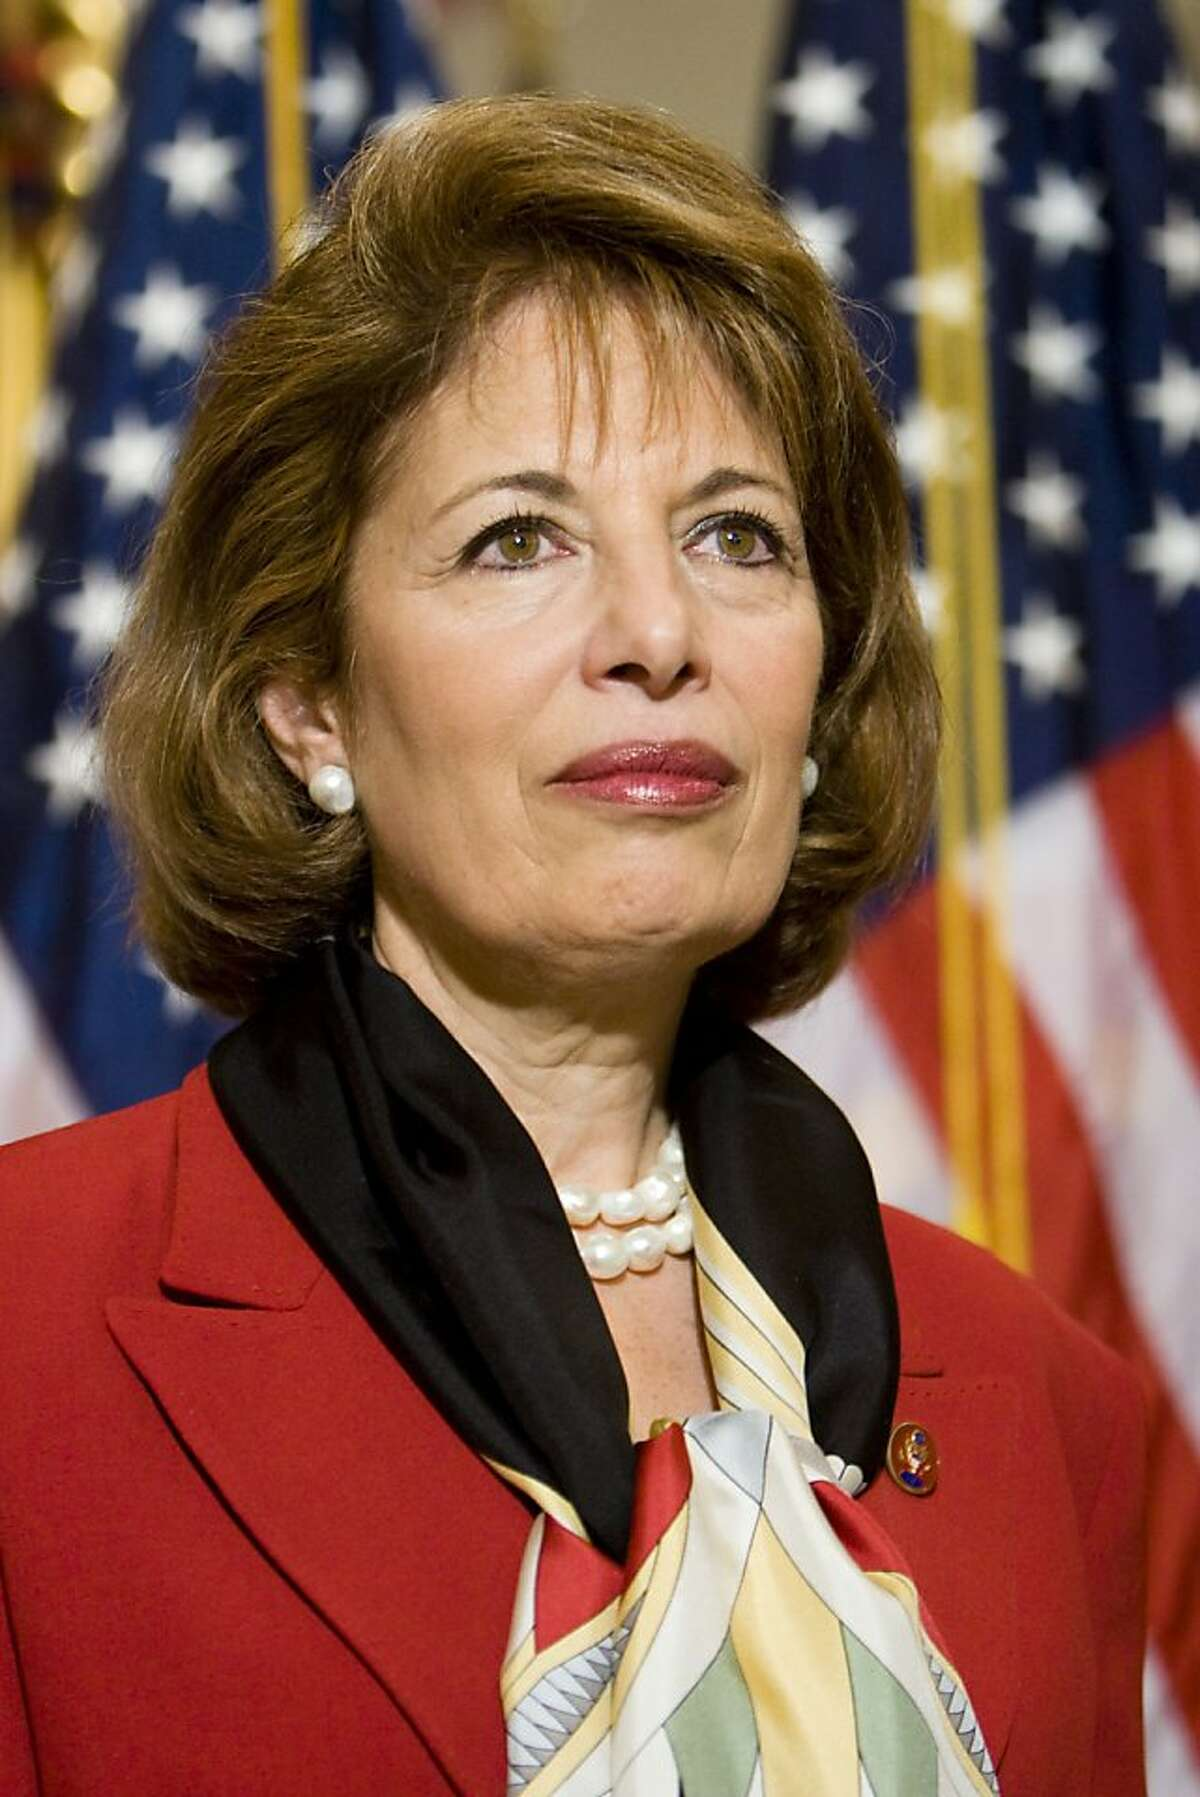 Rep. Jackie Speier, D-Calif. is seen on Capitol Hill in Washington, Thursday, April 10,2008, while participating in a mock swearing in. Rep. Speier was officially sworn in moments before and is taking the place of recently deceased Rep. Tom Lantos. (AP Photo/Brendan Hoffman)